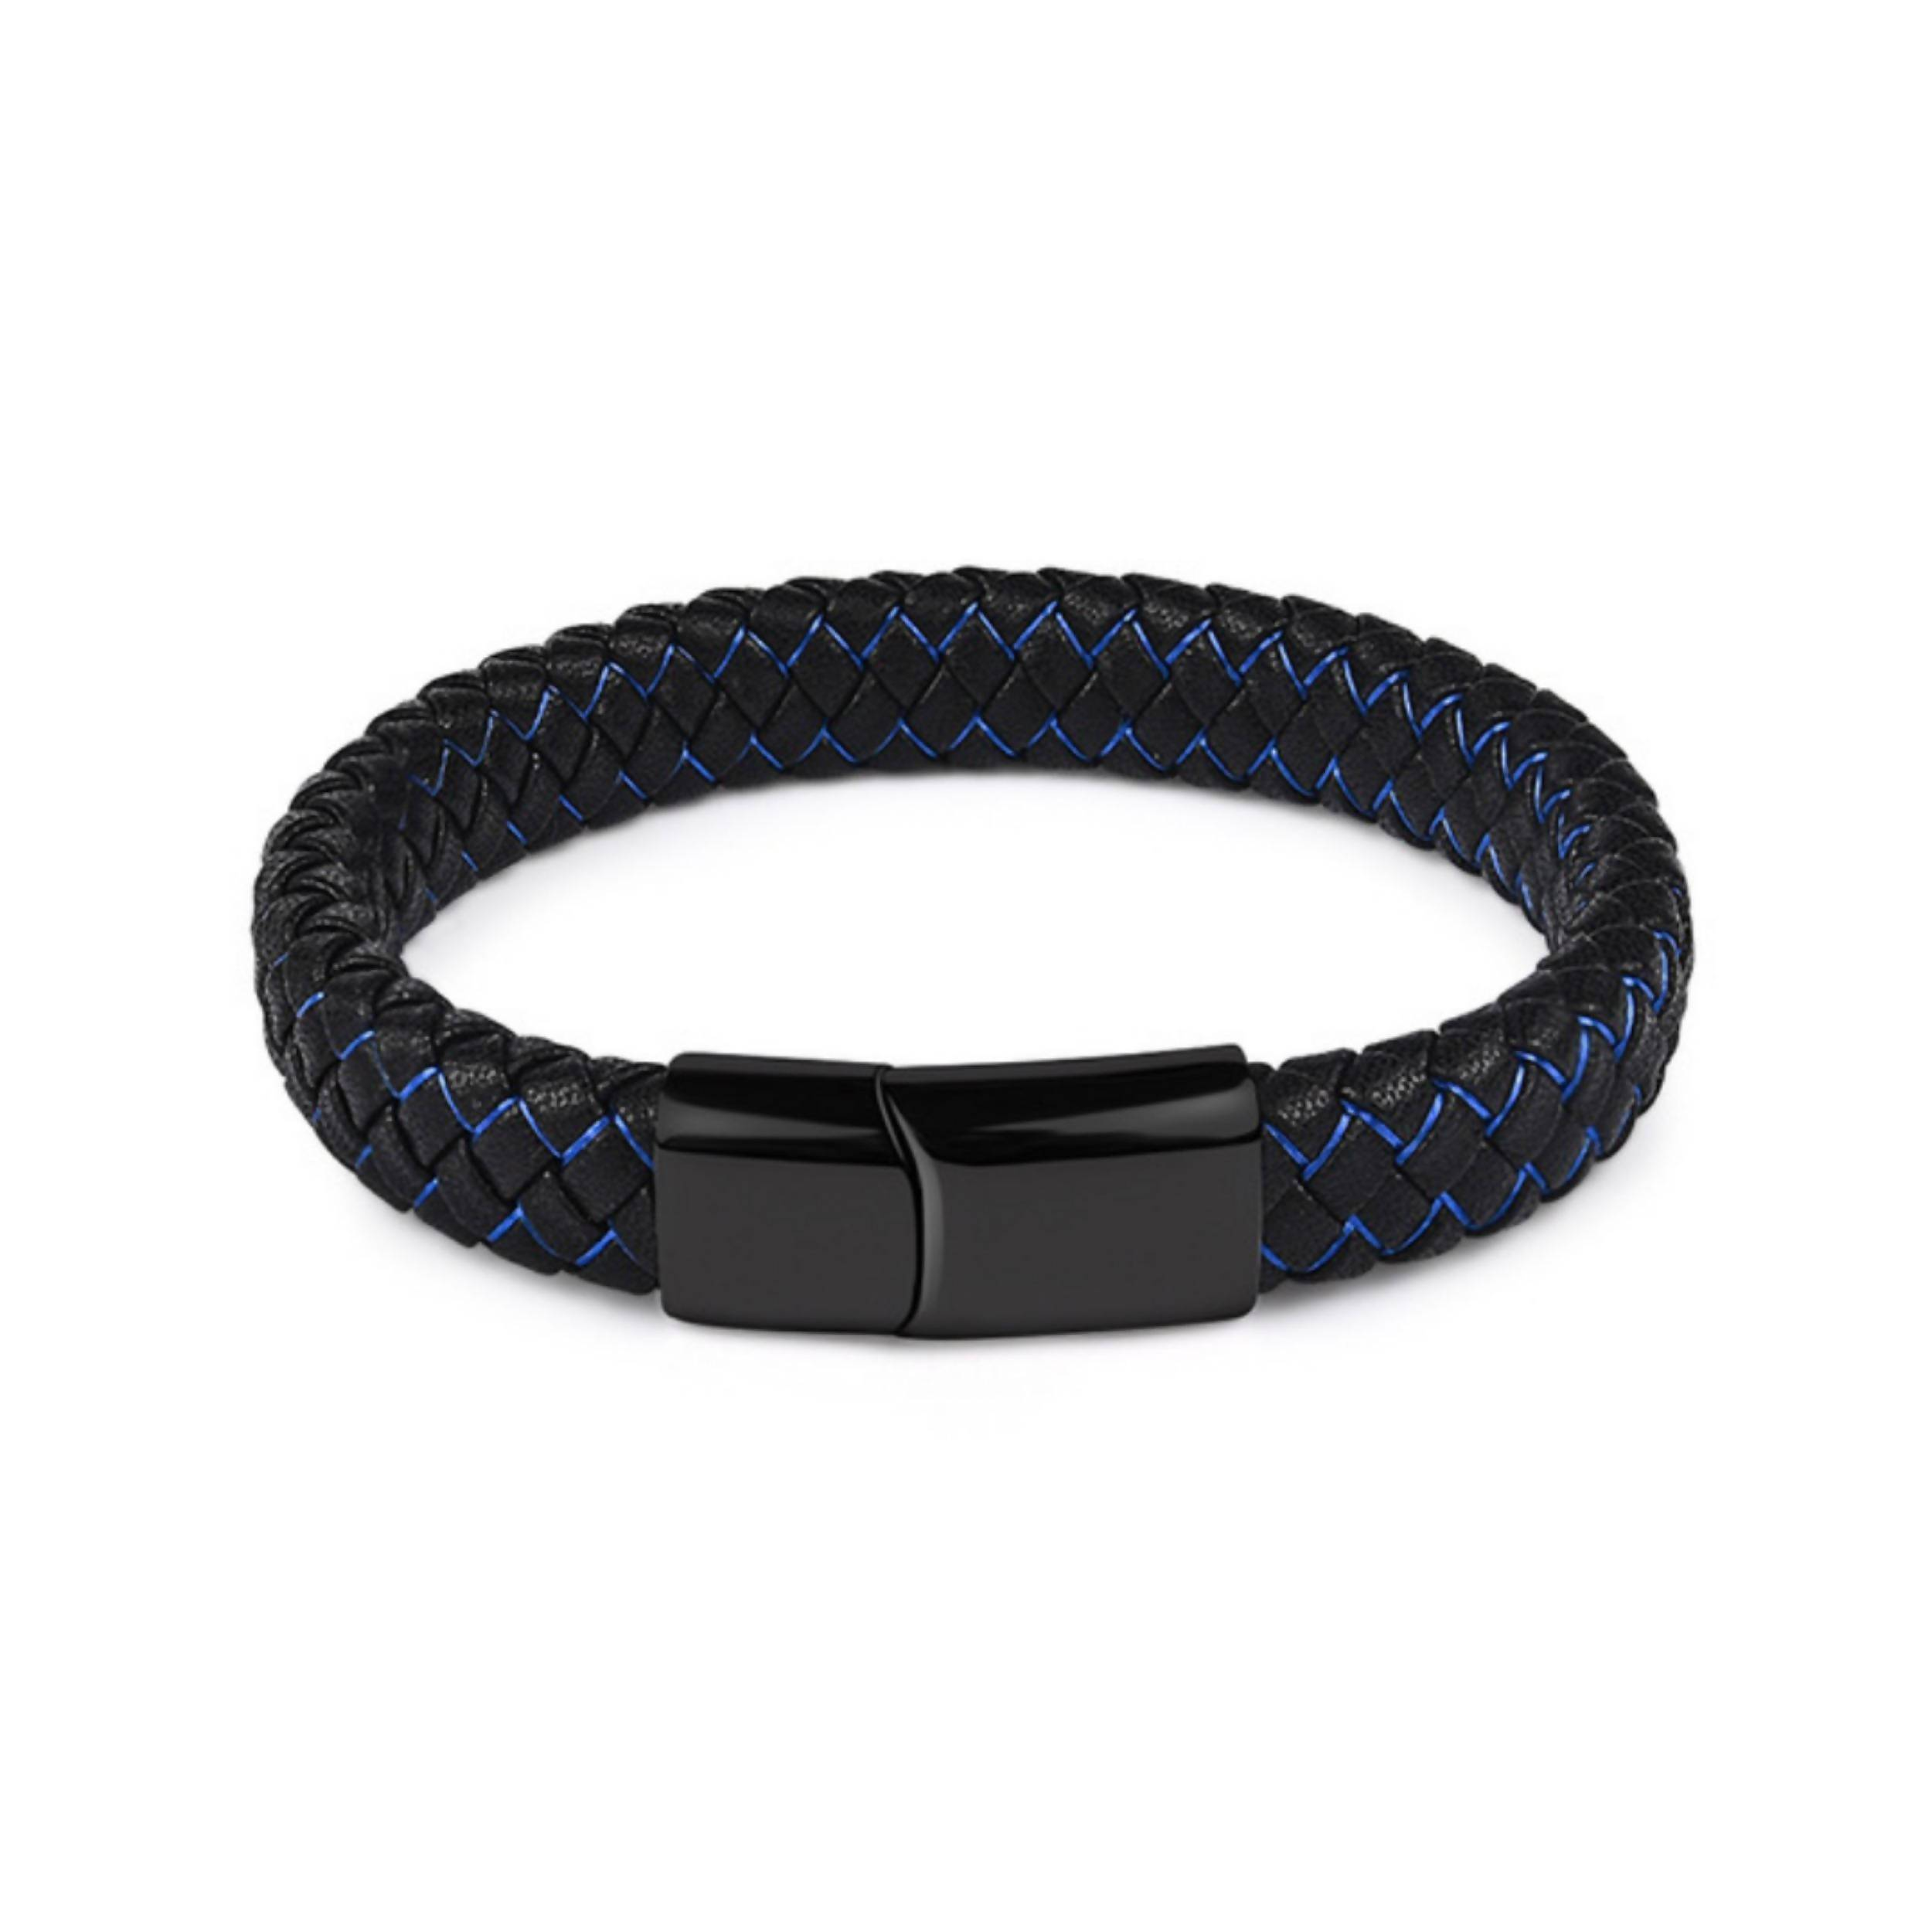 J. By Jee Black & Blue Bi-braided Leather Black Clasp Bracelet - Men's Bracelets - J By Jee - Naiise